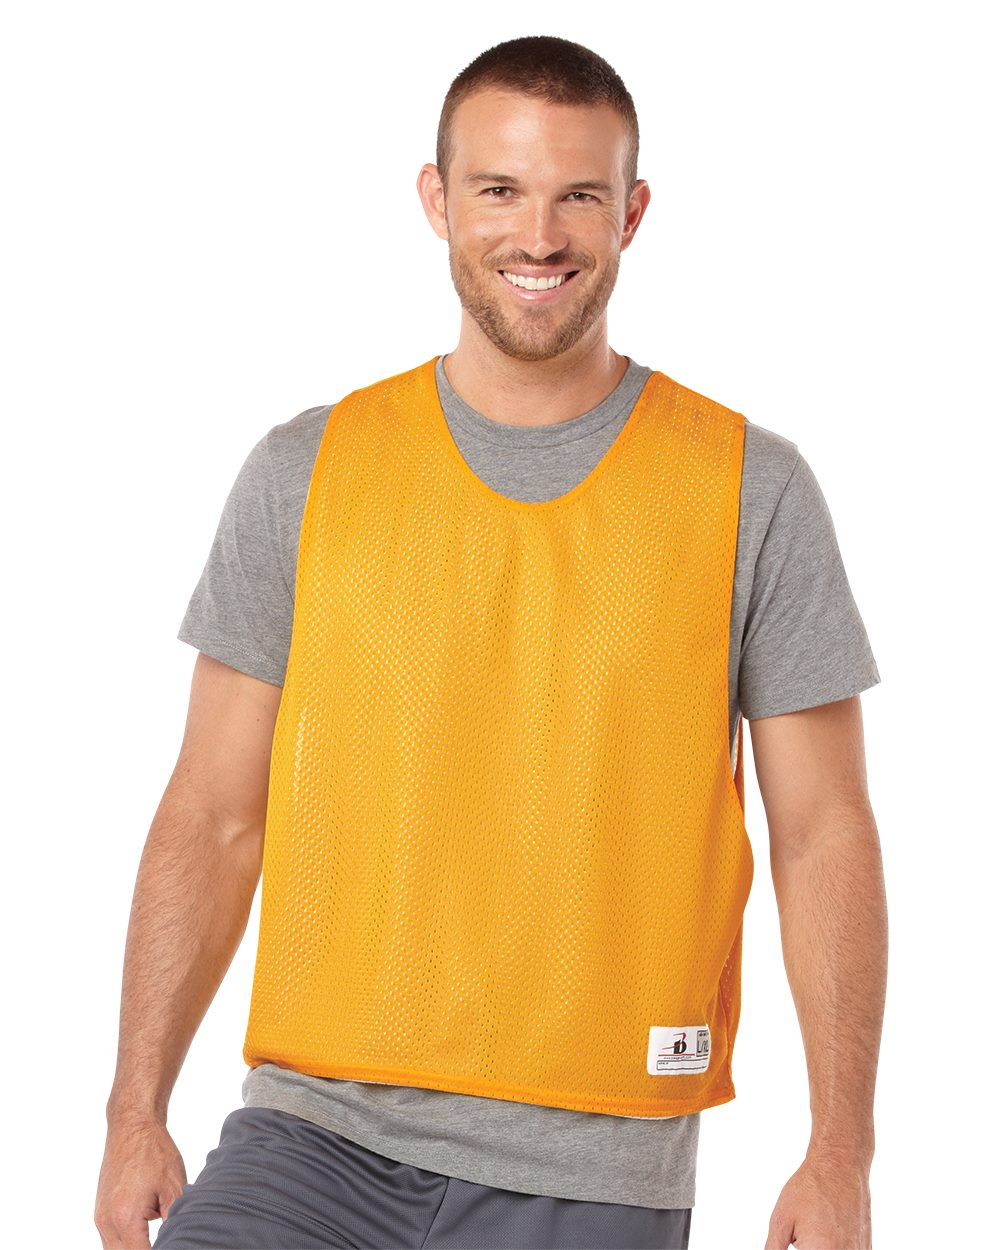 Badger 8560 - Reversible Practice Jersey